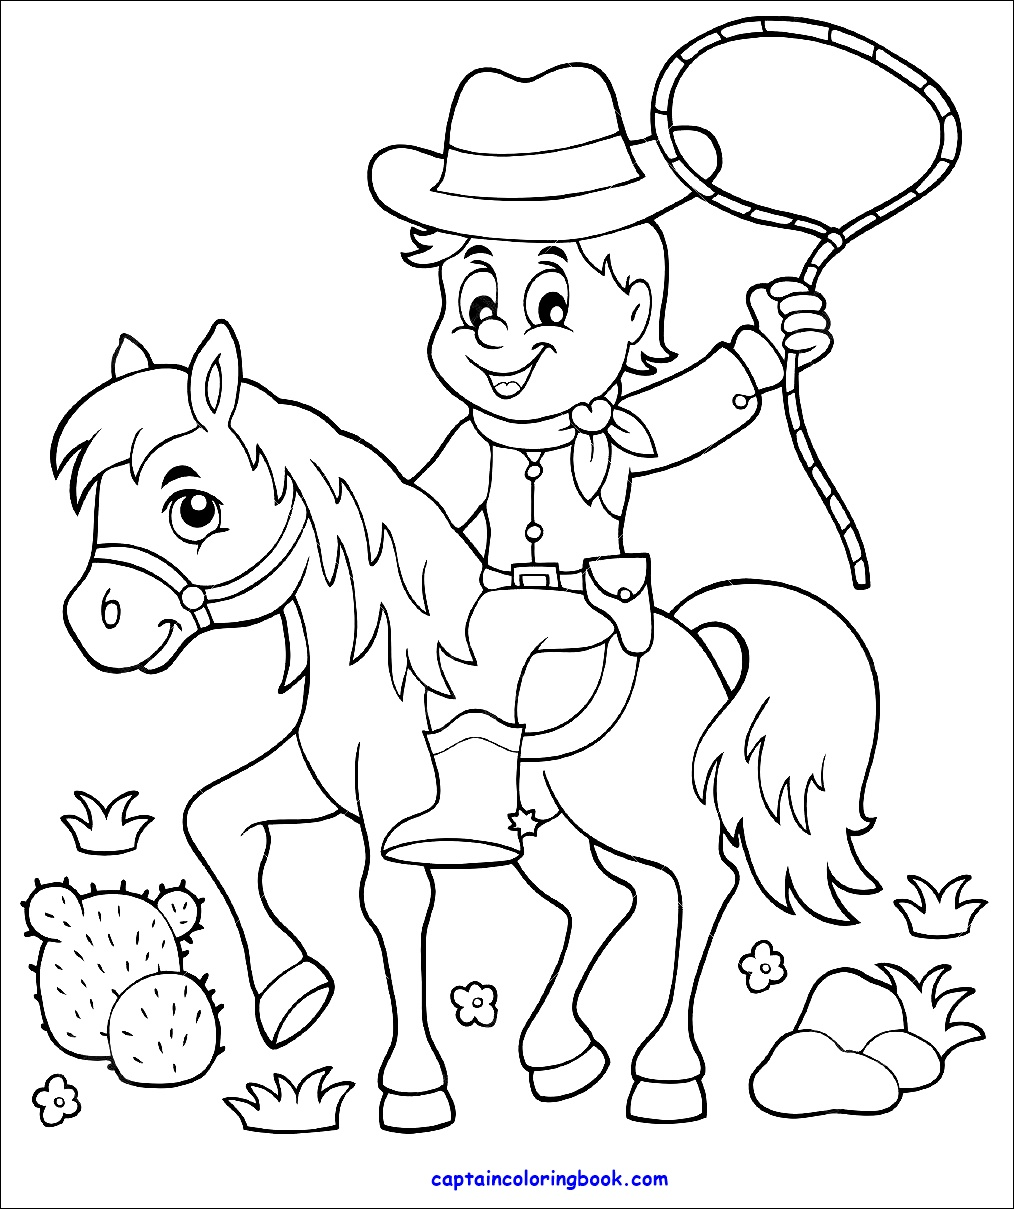 Coloring Book Pdf Coloring Book Cowboy On Horse